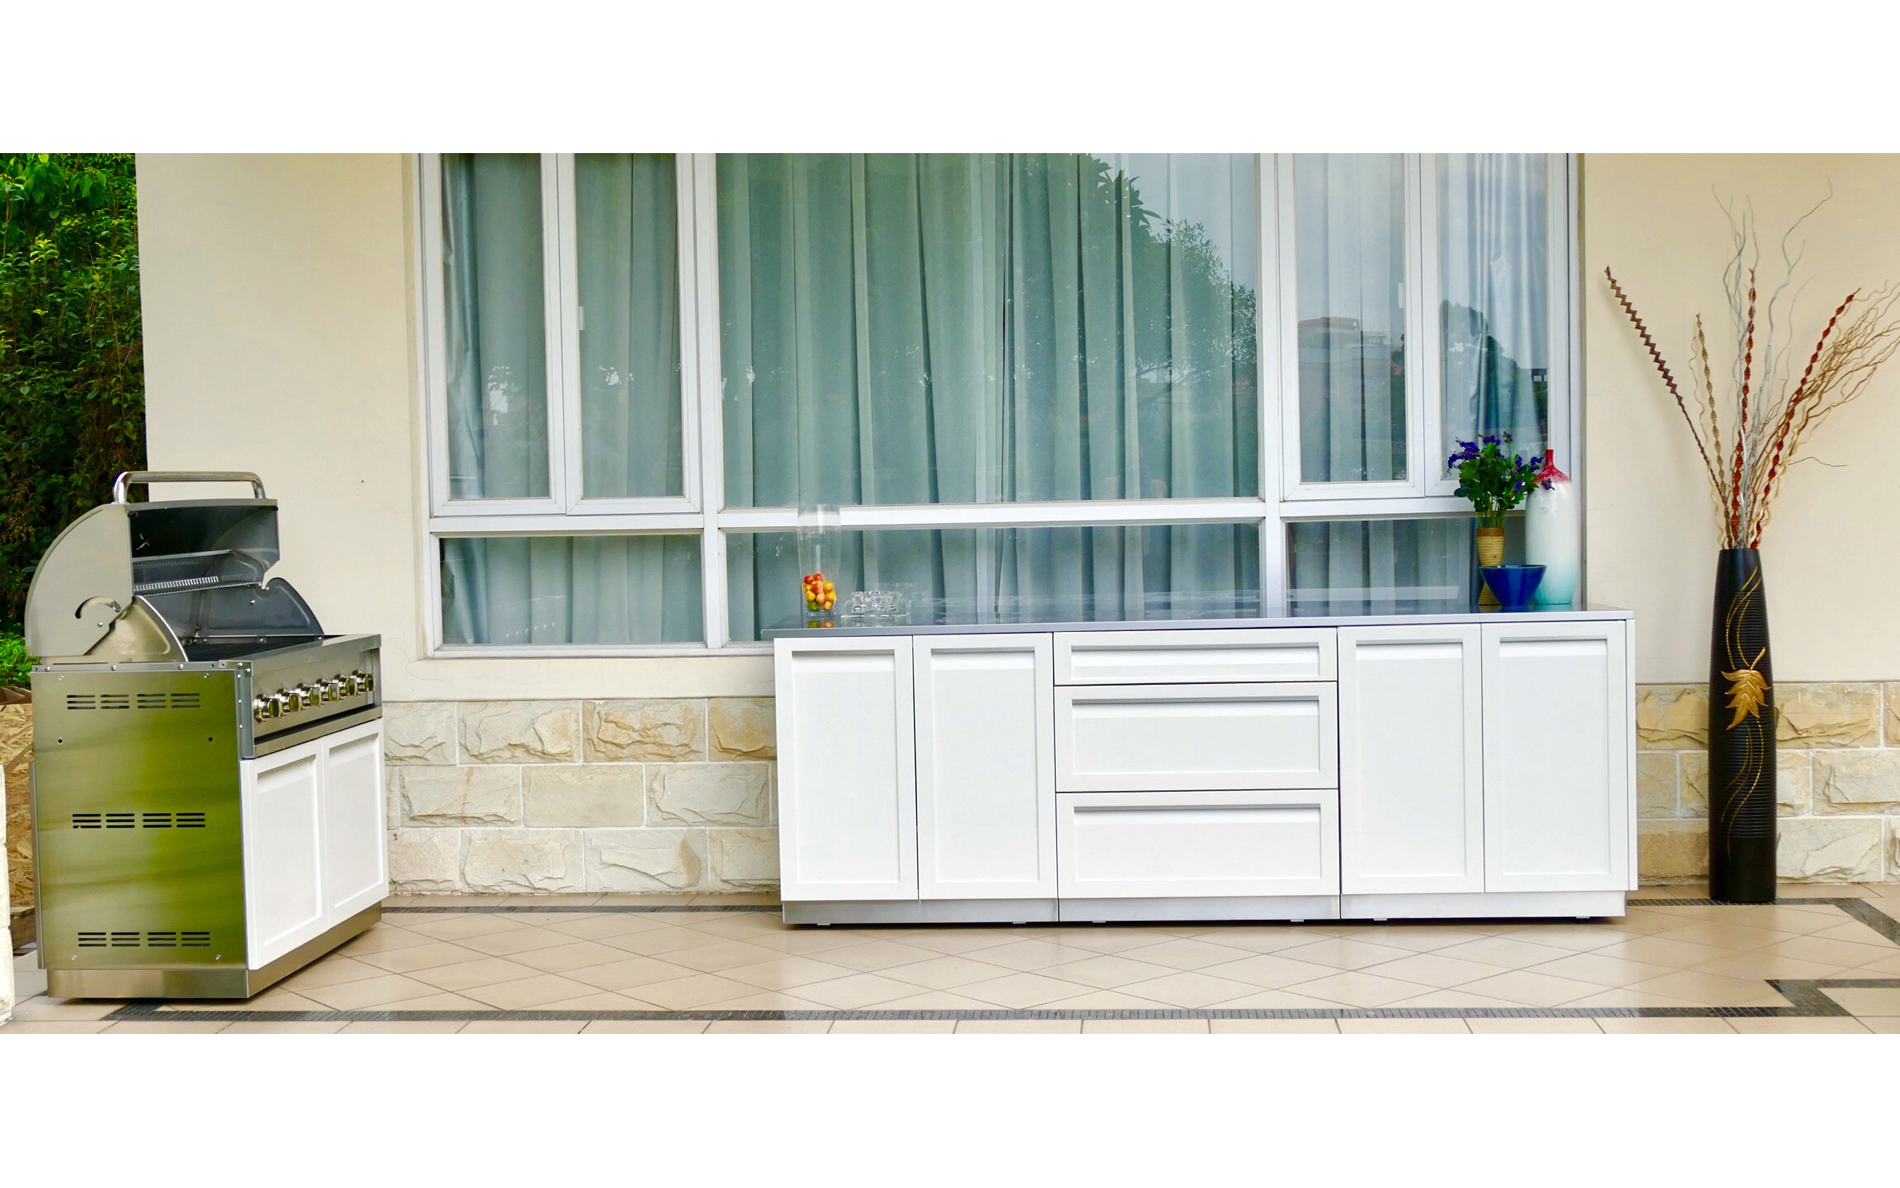 2-Door Outdoor Kitchen Cabinet - W40051 - 4 Life Outdoor Inc.